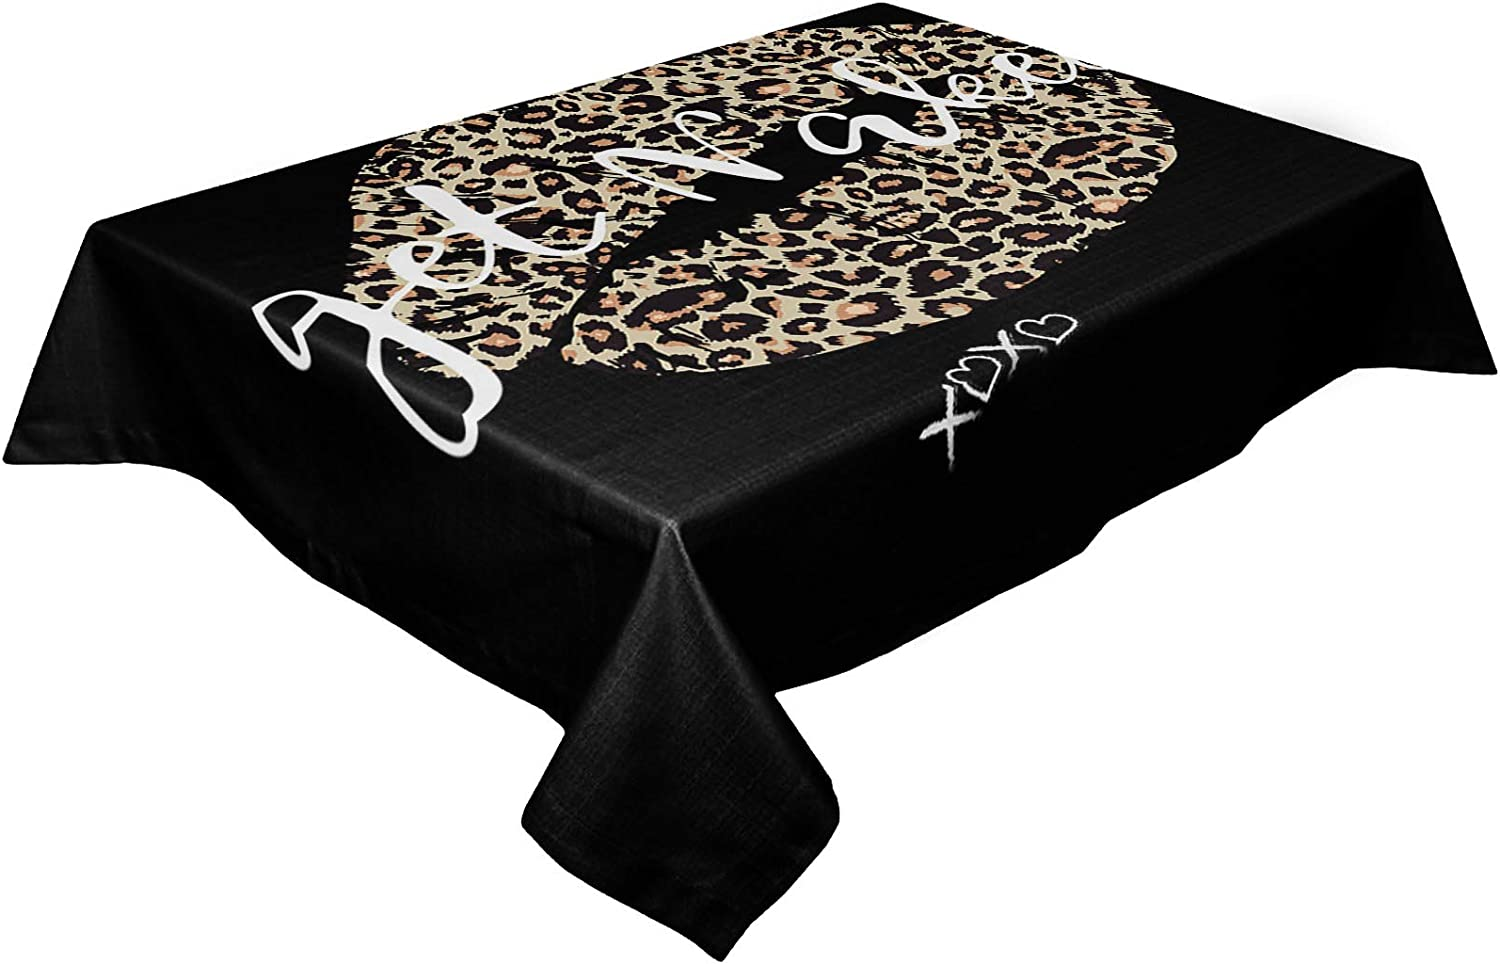 HELLOWINK Rectangle Table Cloths Sexy Print Direct sale of manufacturer Ranking TOP13 Leopard 60x120inch